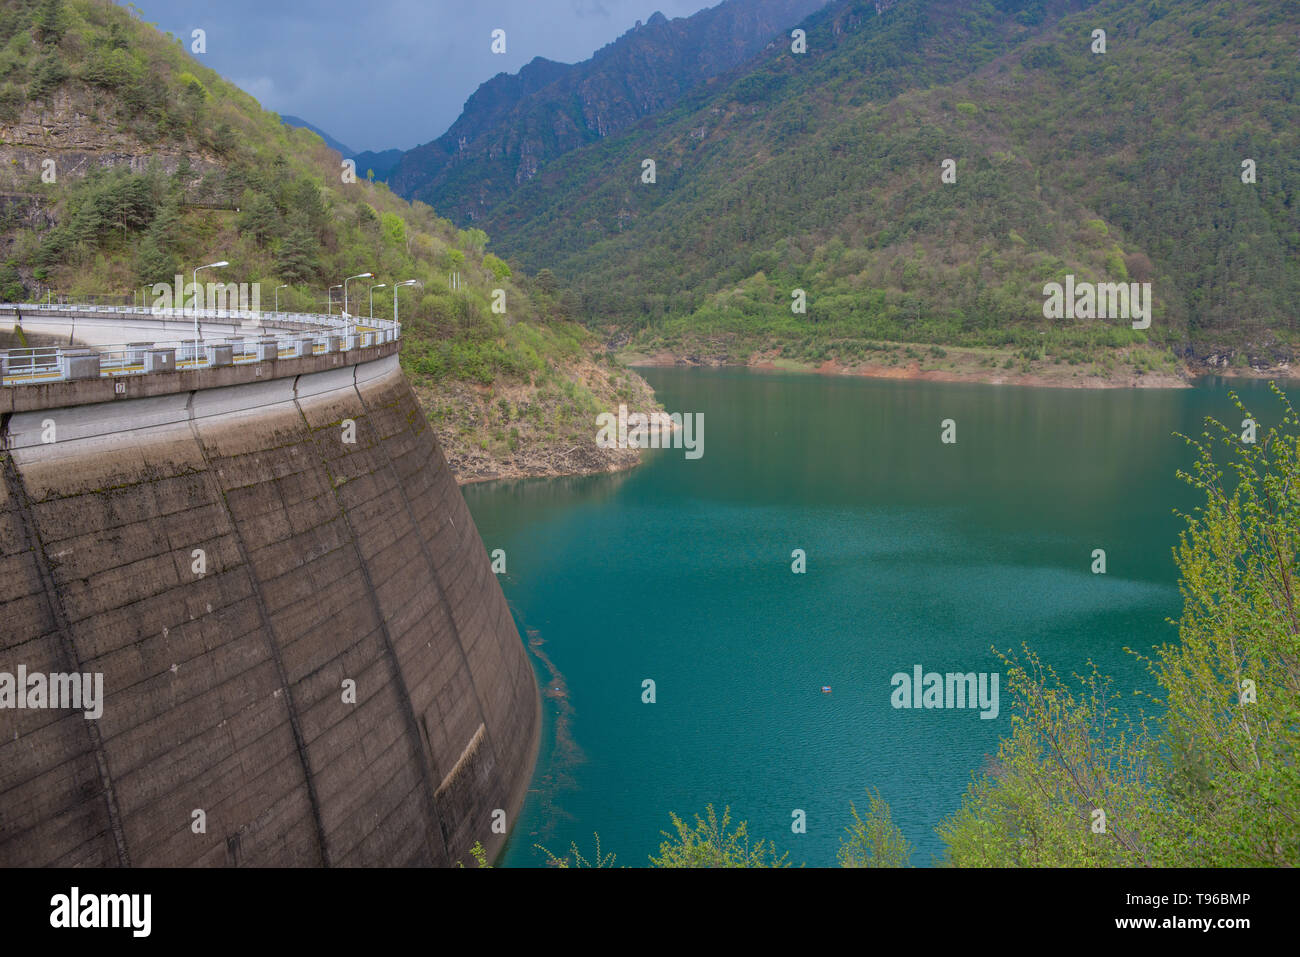 Valvestino dam basin for electricity production - Stock Image